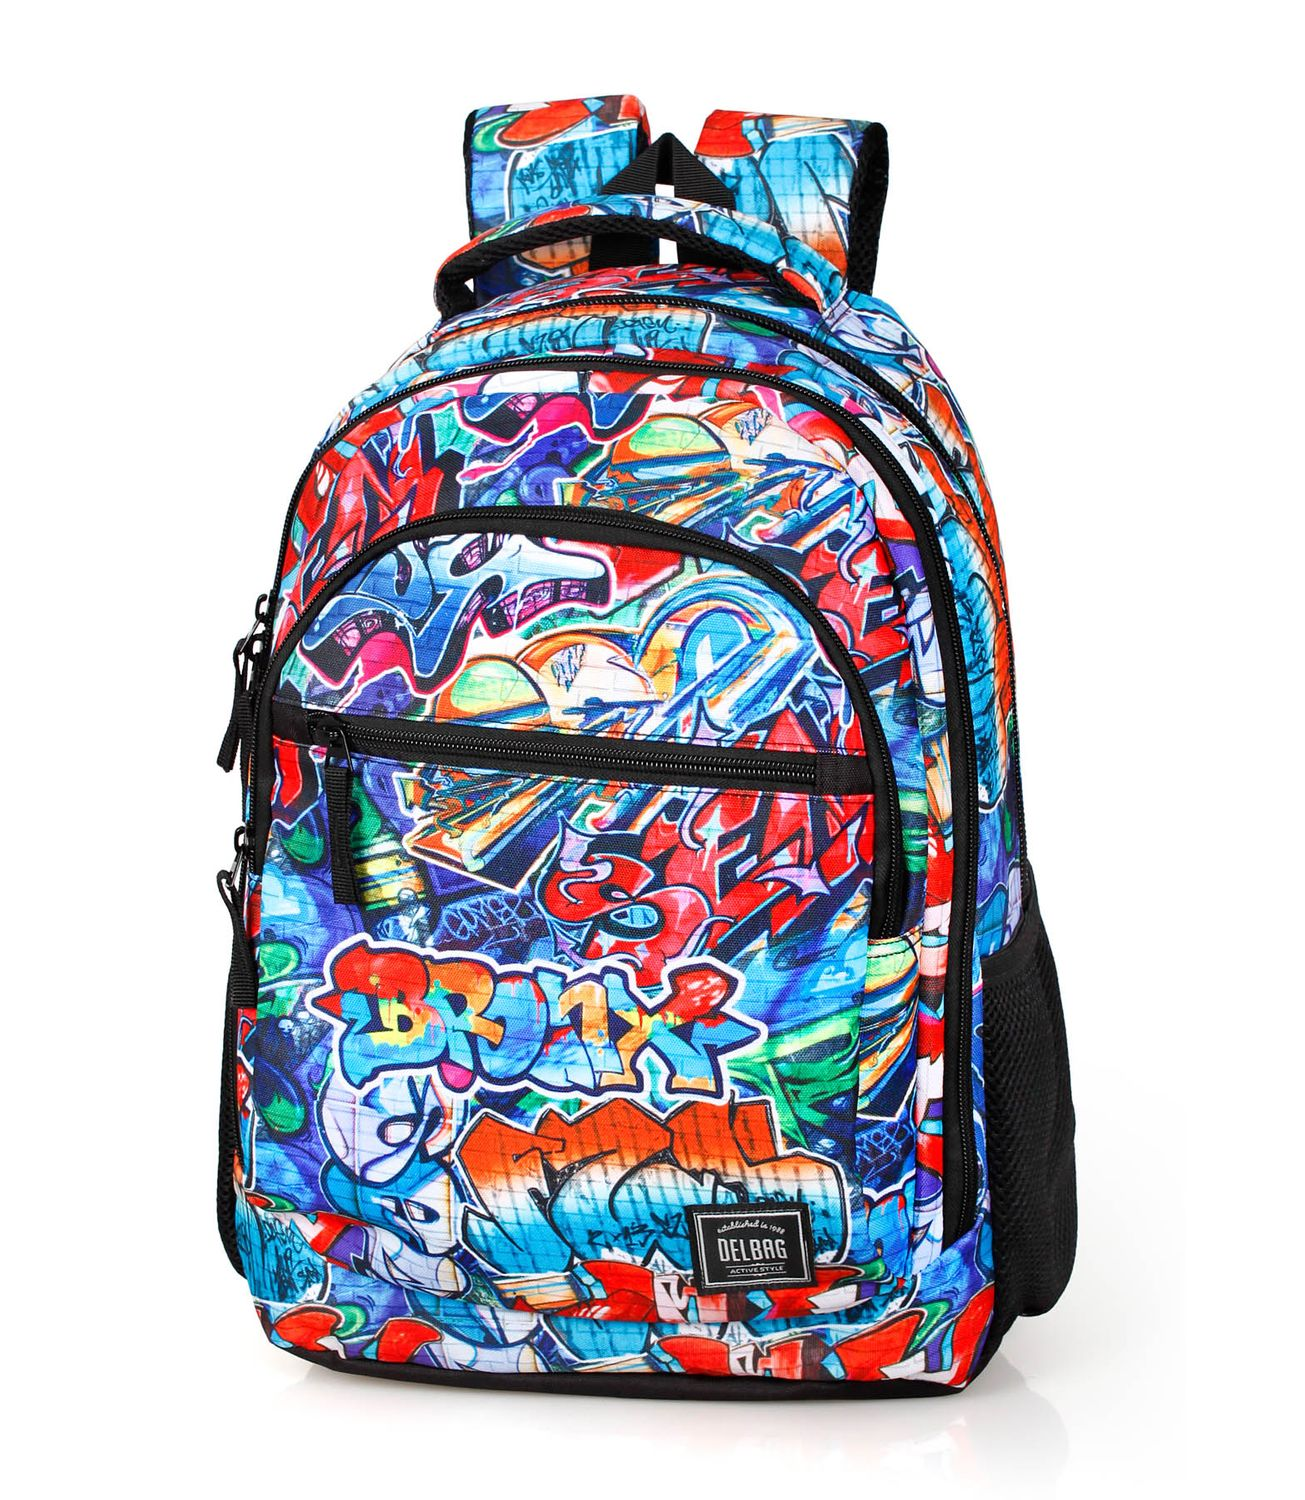 Triple Backpack Rucksack GRAFFITI BRONX – image 1